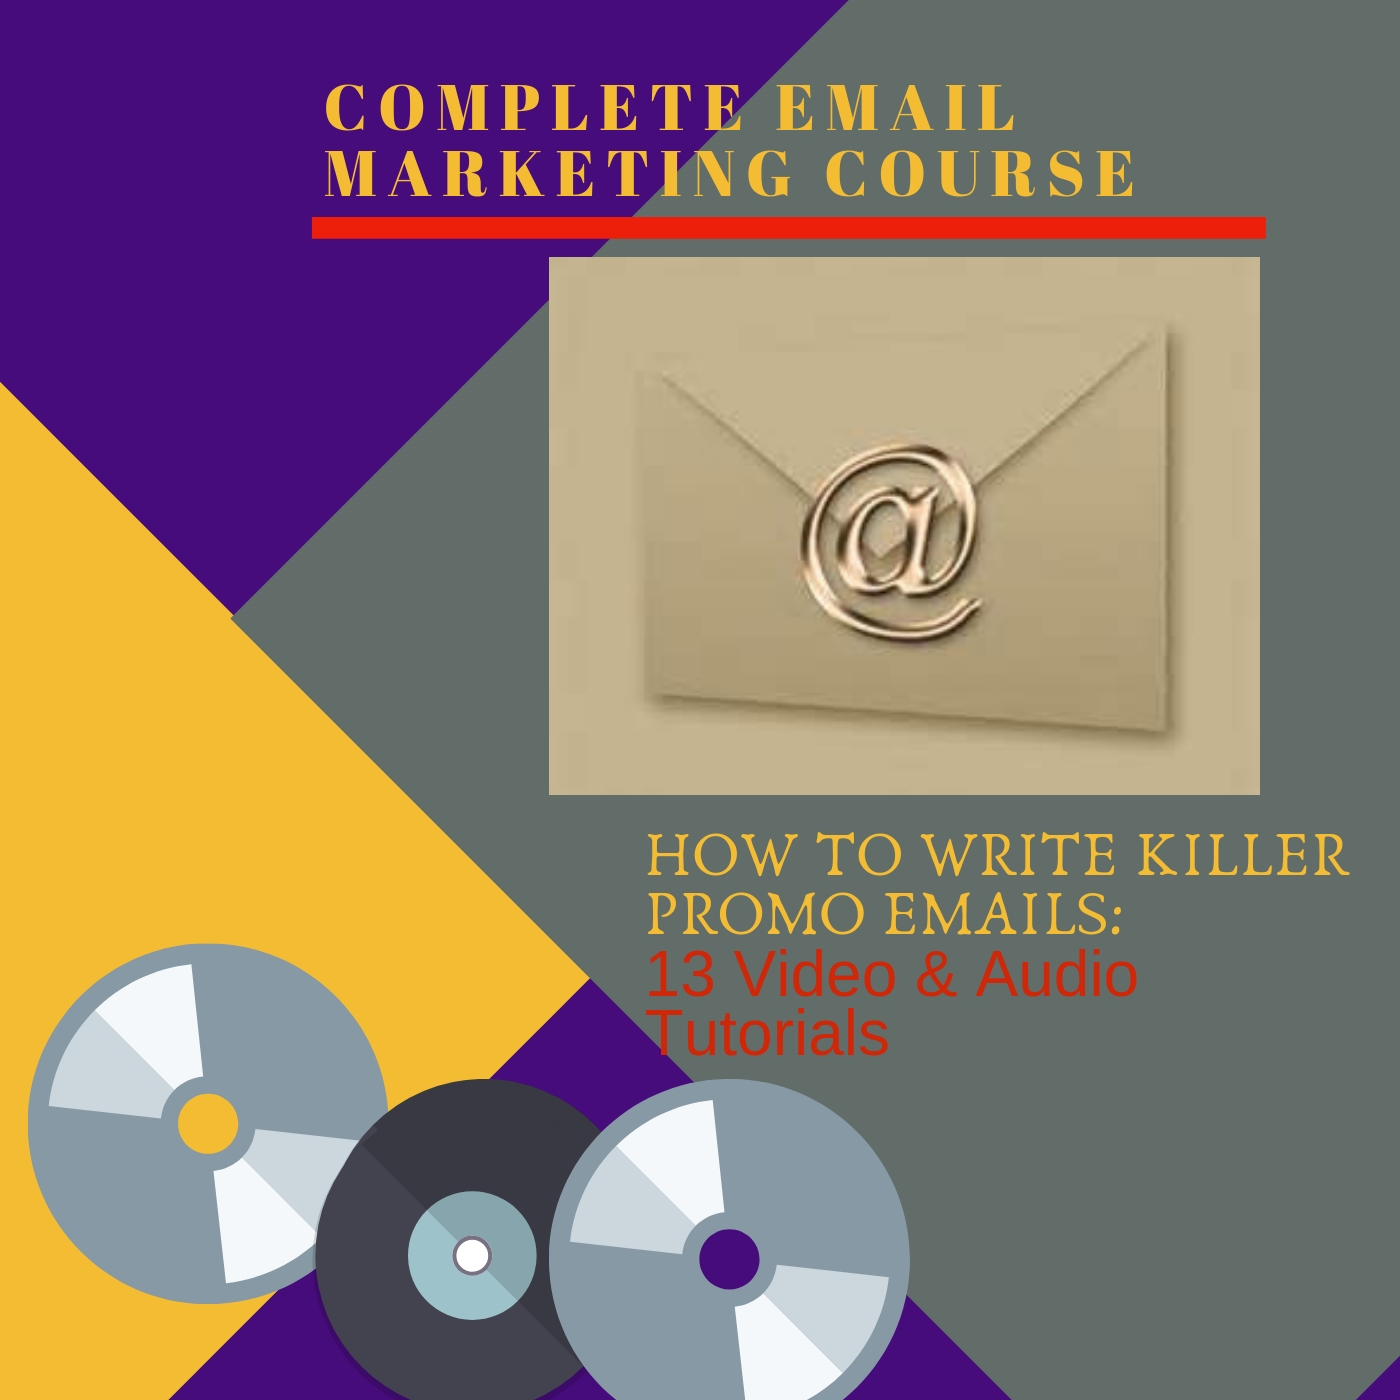 I WILL SEND YOU A COMPLETE EMAIL MARKETING COURSE